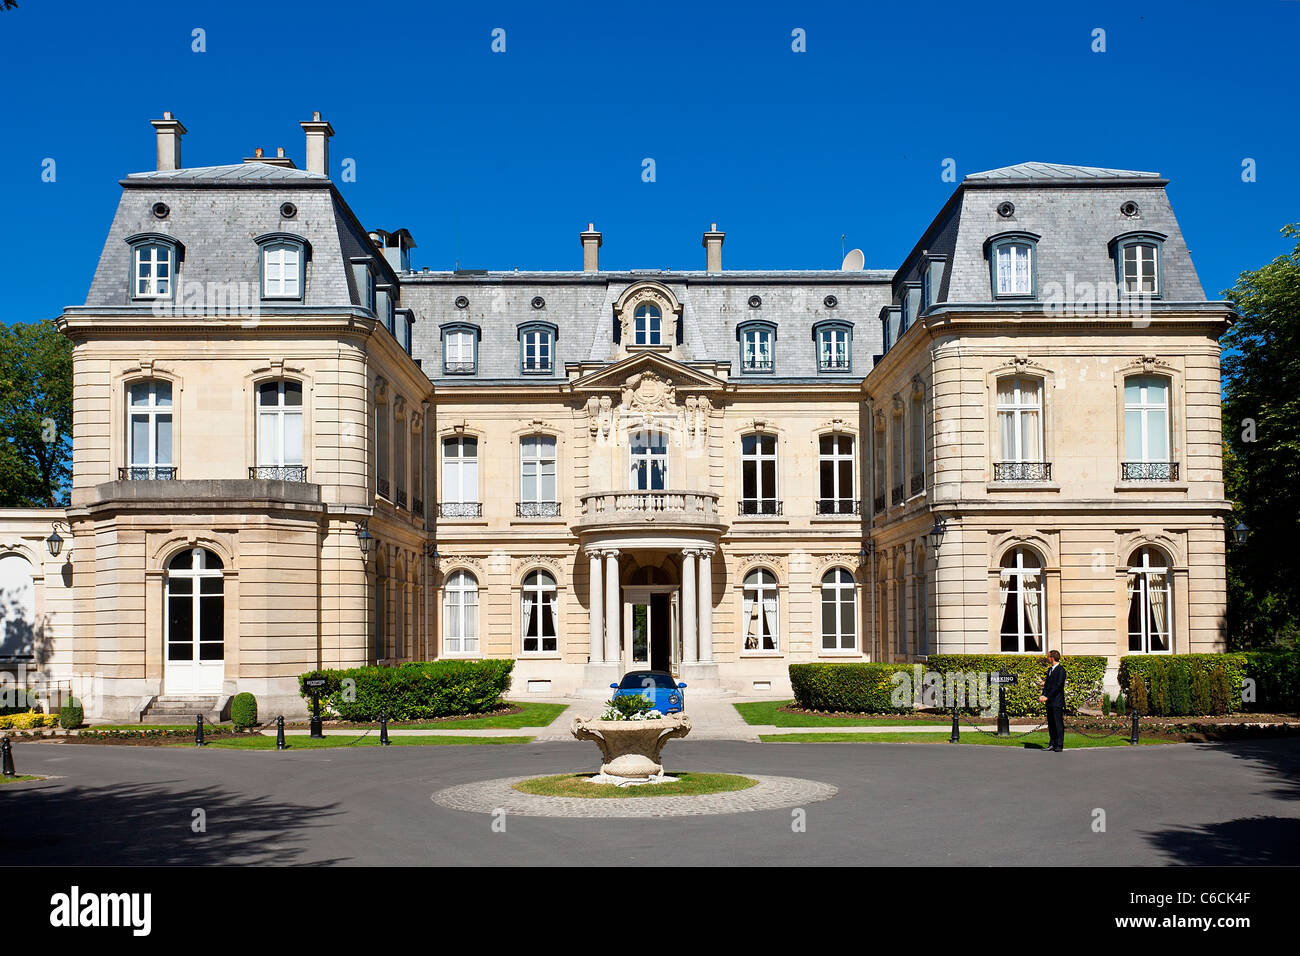 France, Marne, Reims, Chateau les Crayeres Restaurant Stock Photo